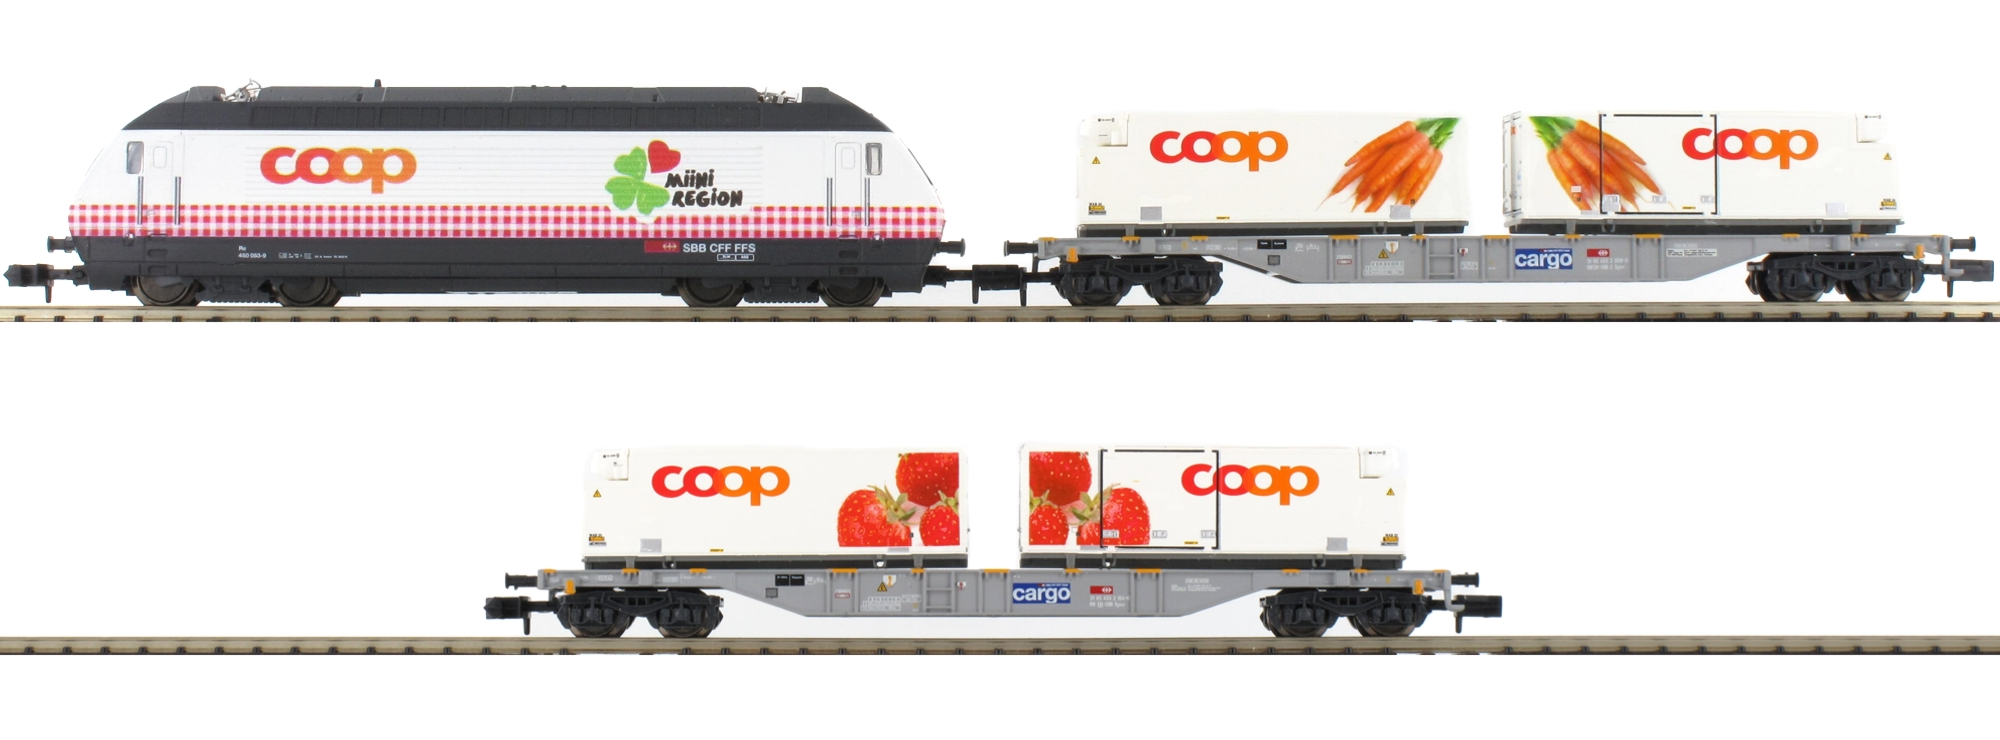 N Scale - Minitrix - 11638 - Freight Train, European, Electric, Epoch VI - SBB CFF FFS - 3-Pack